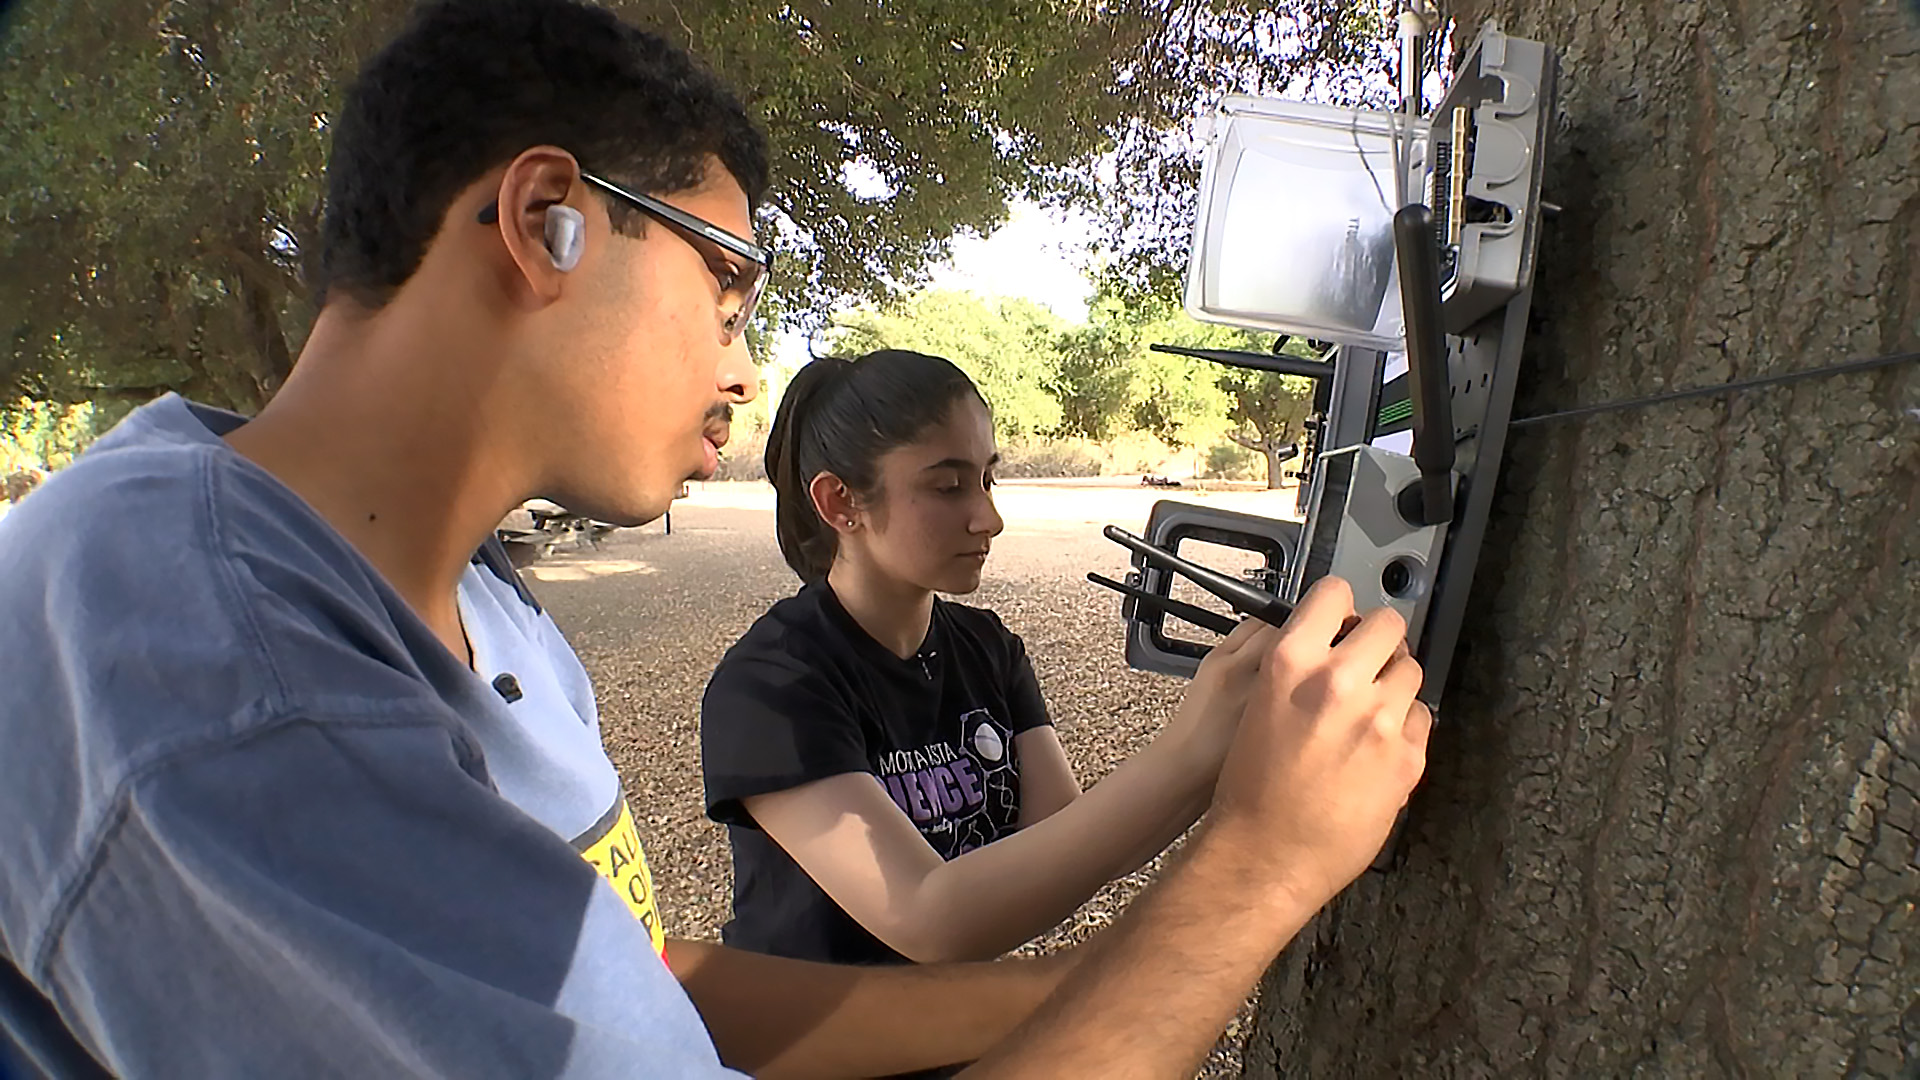 South Bay Teens Getting Attention For Smart Wildfire Sensor